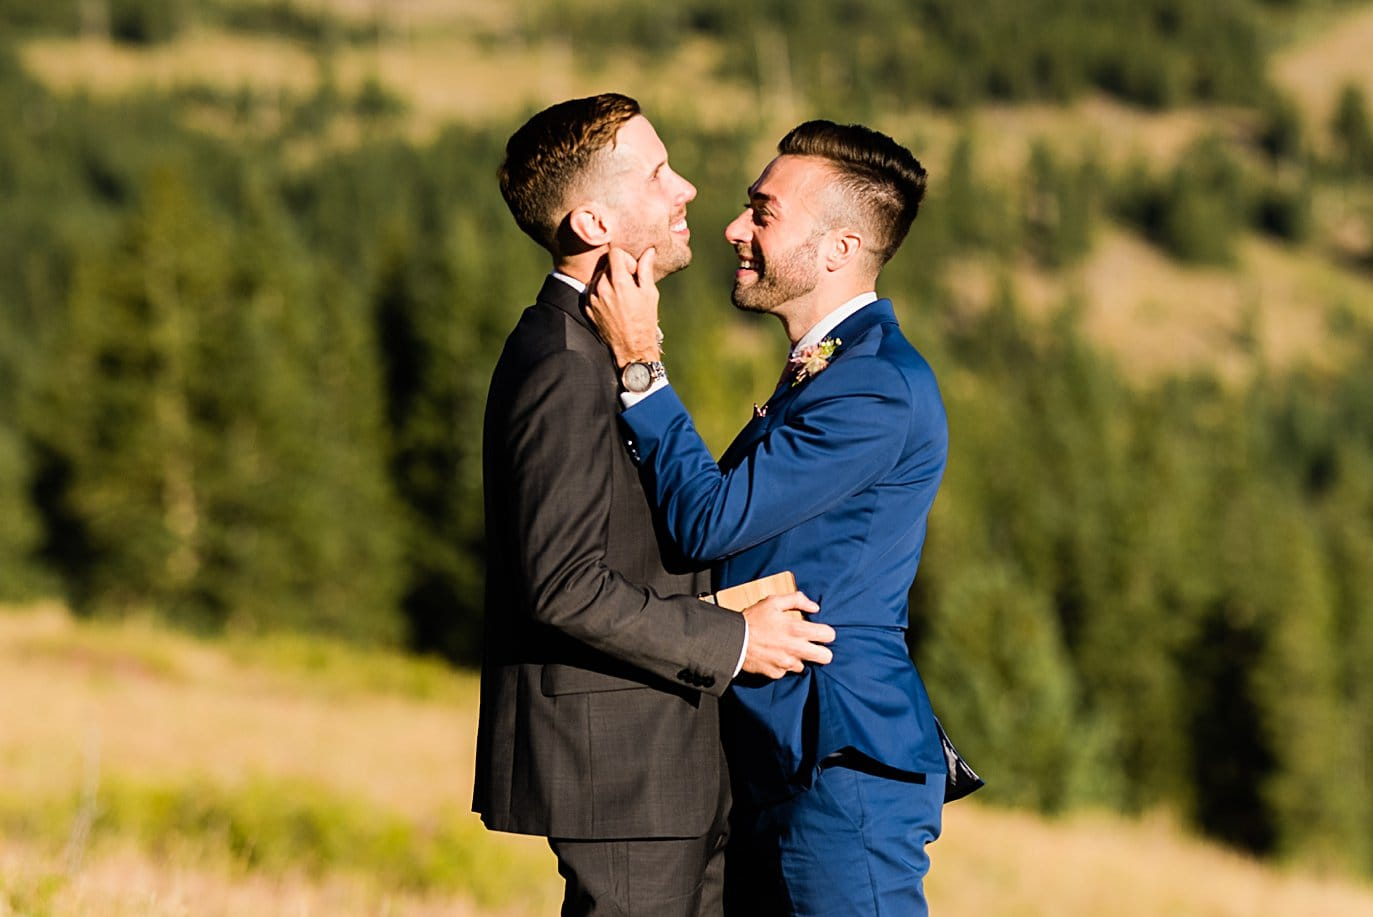 two groom share moment during self-solemnized ceremony at Breckenridge Elopement by Colorado gay wedding photographer Jennie Crate